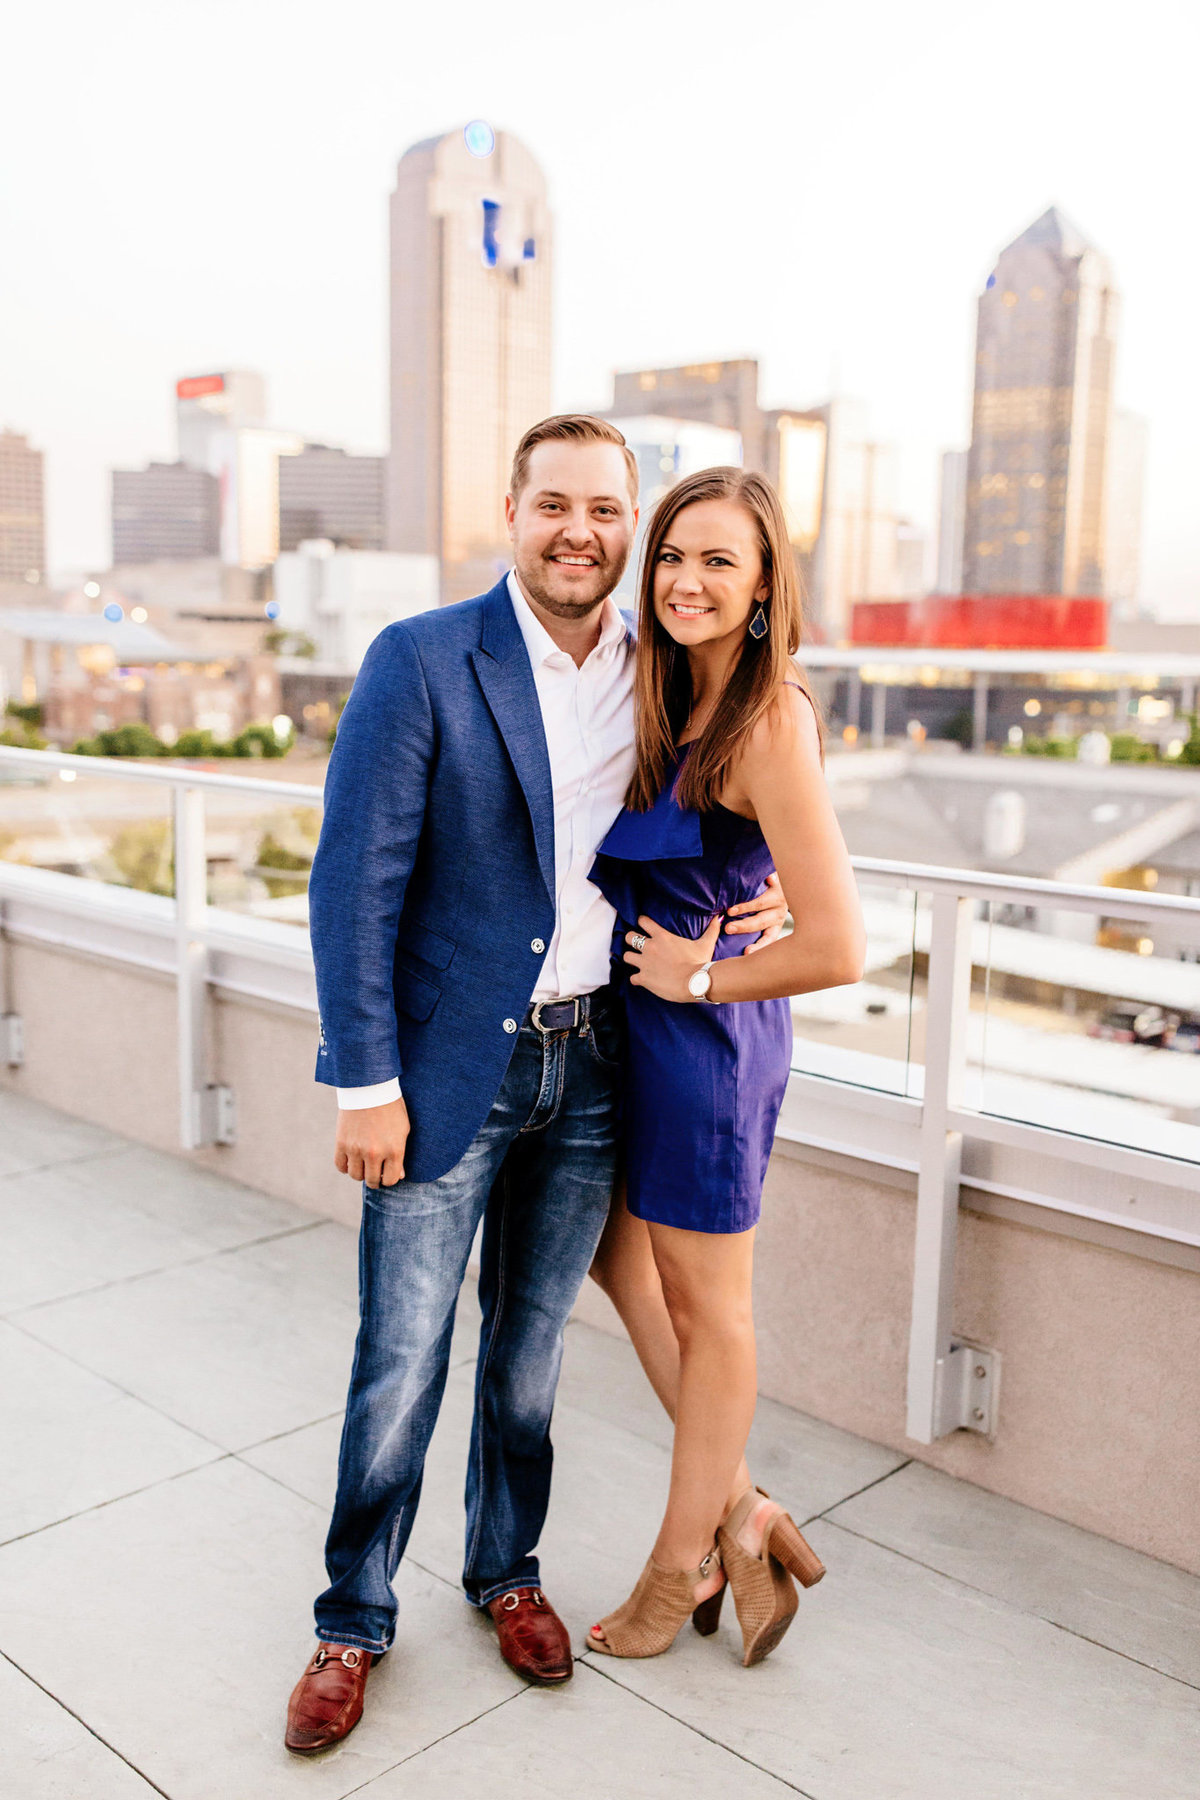 Eric & Megan - Downtown Dallas Rooftop Proposal & Engagement Session-253